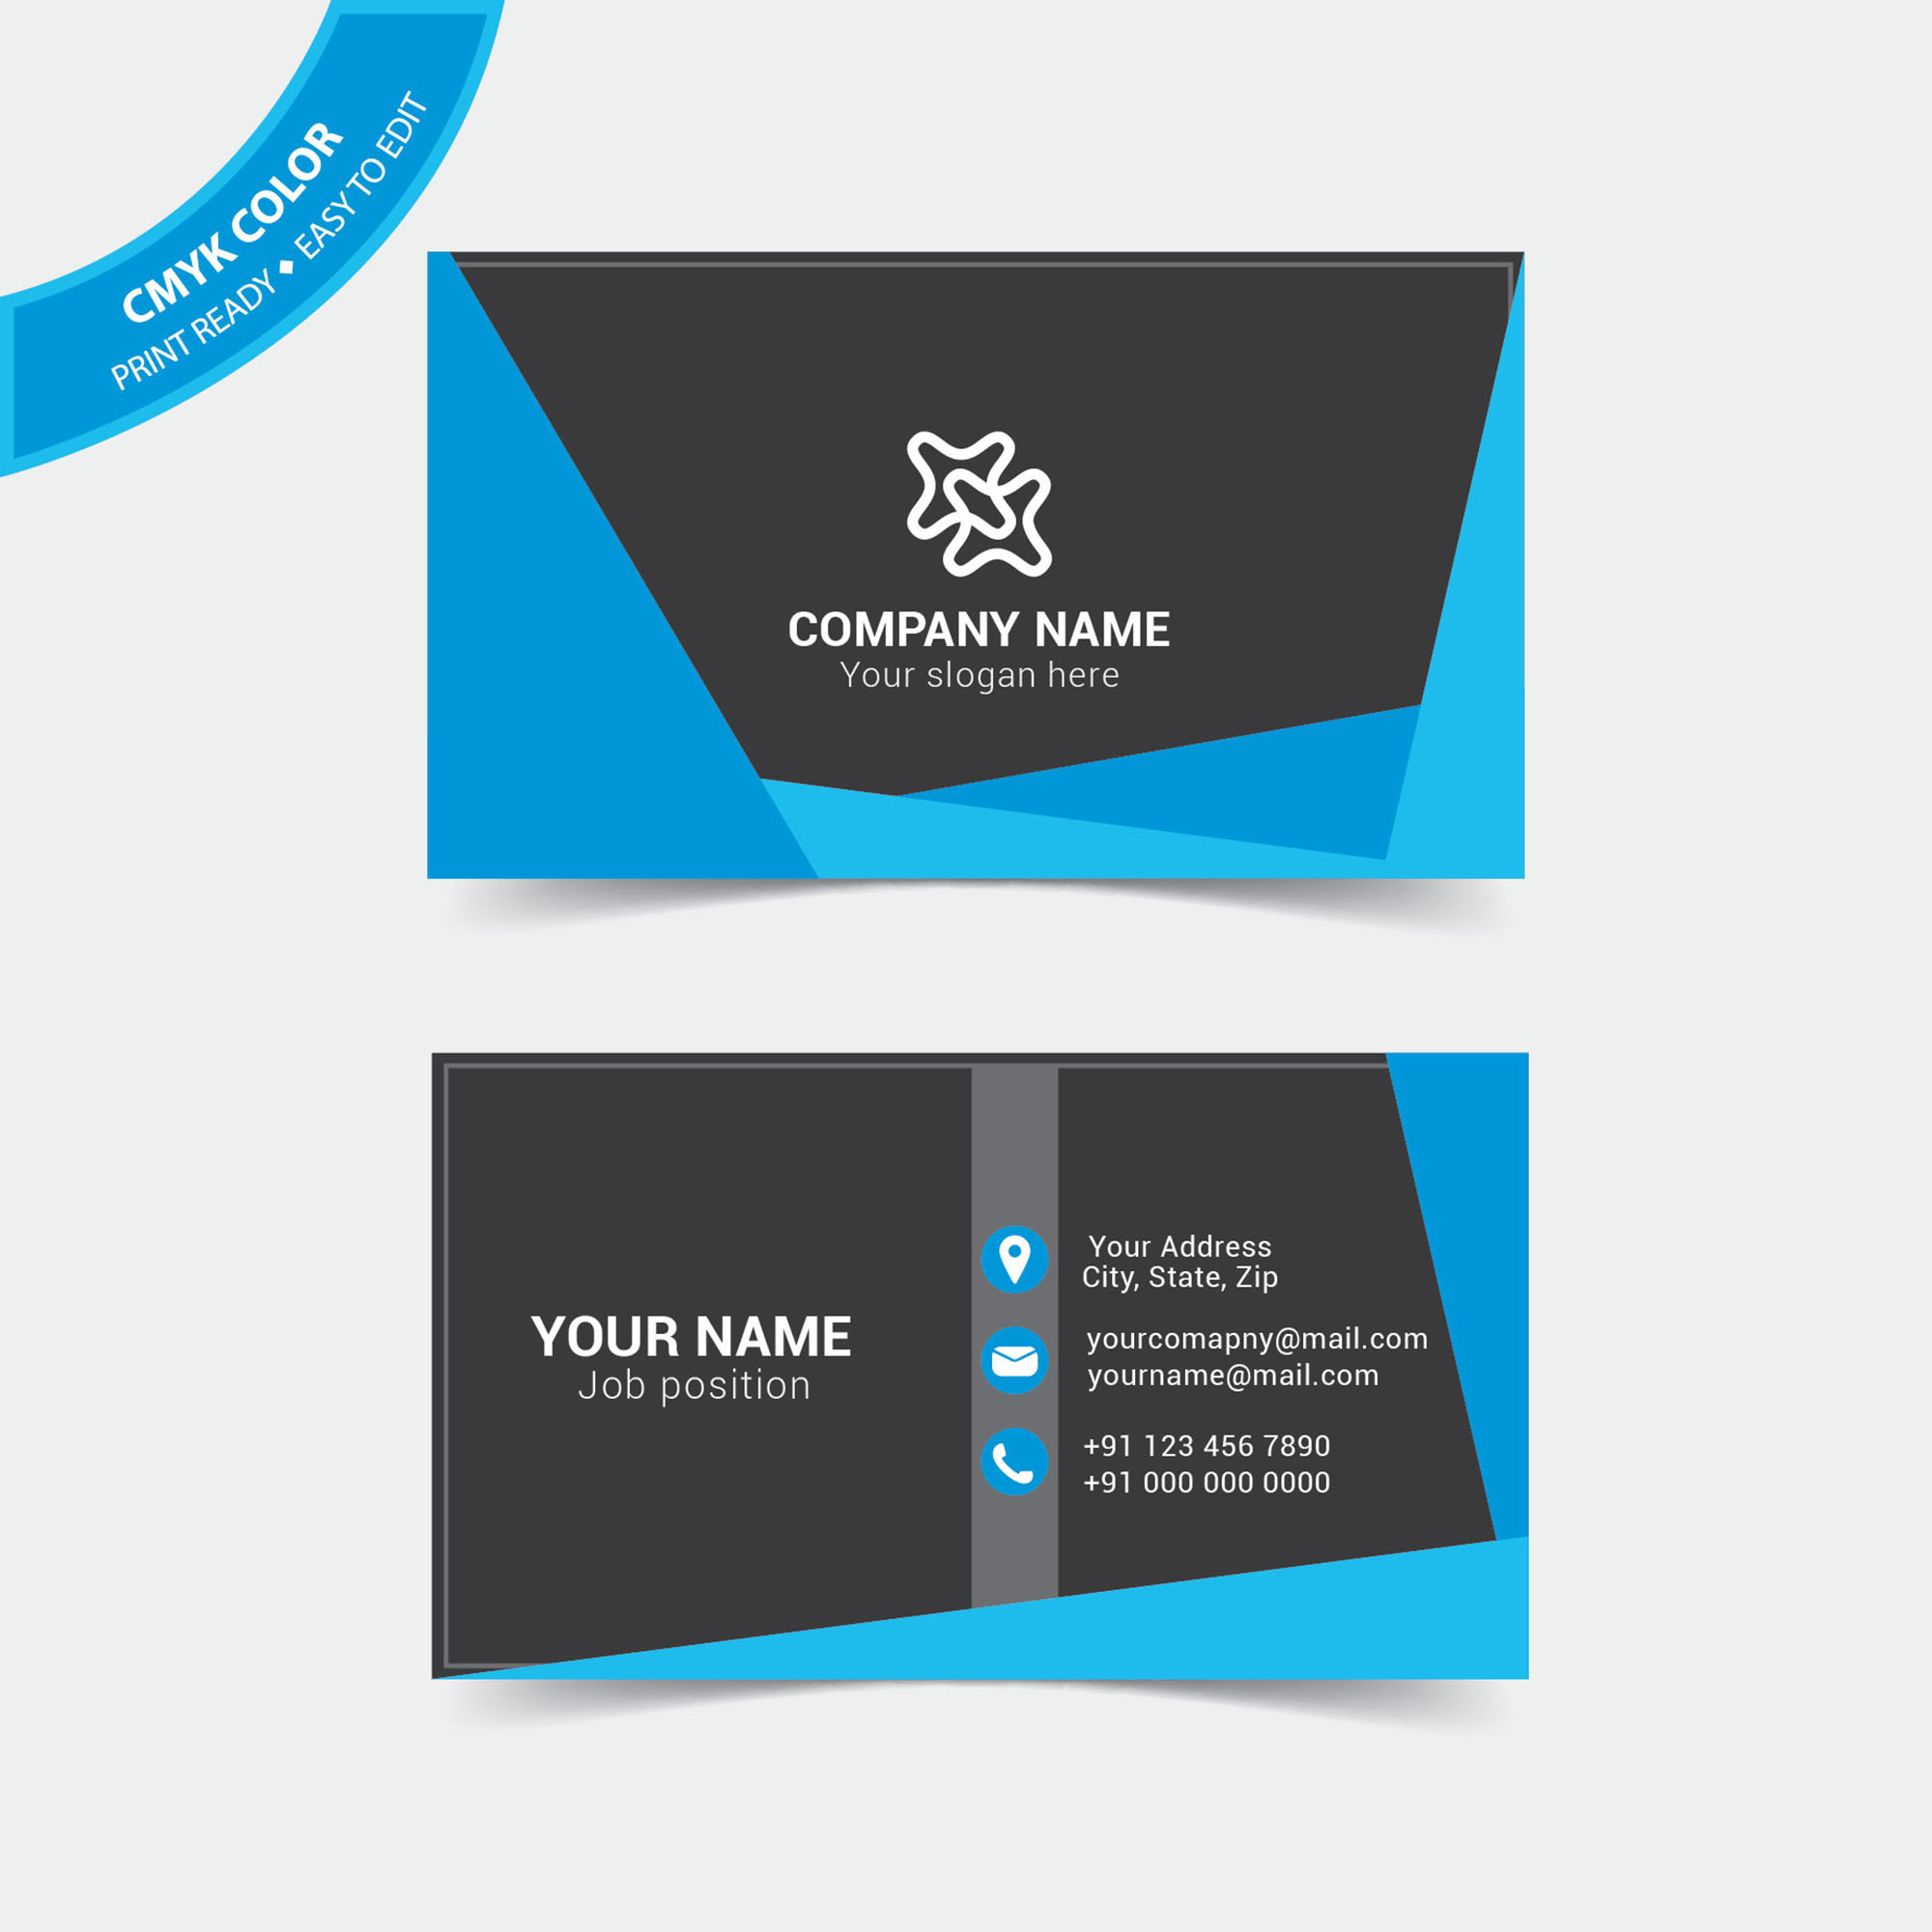 Perky Business Business Visiting Card Design Free Download Business Card Maker Business Card Her Desk cards Modern Business Card